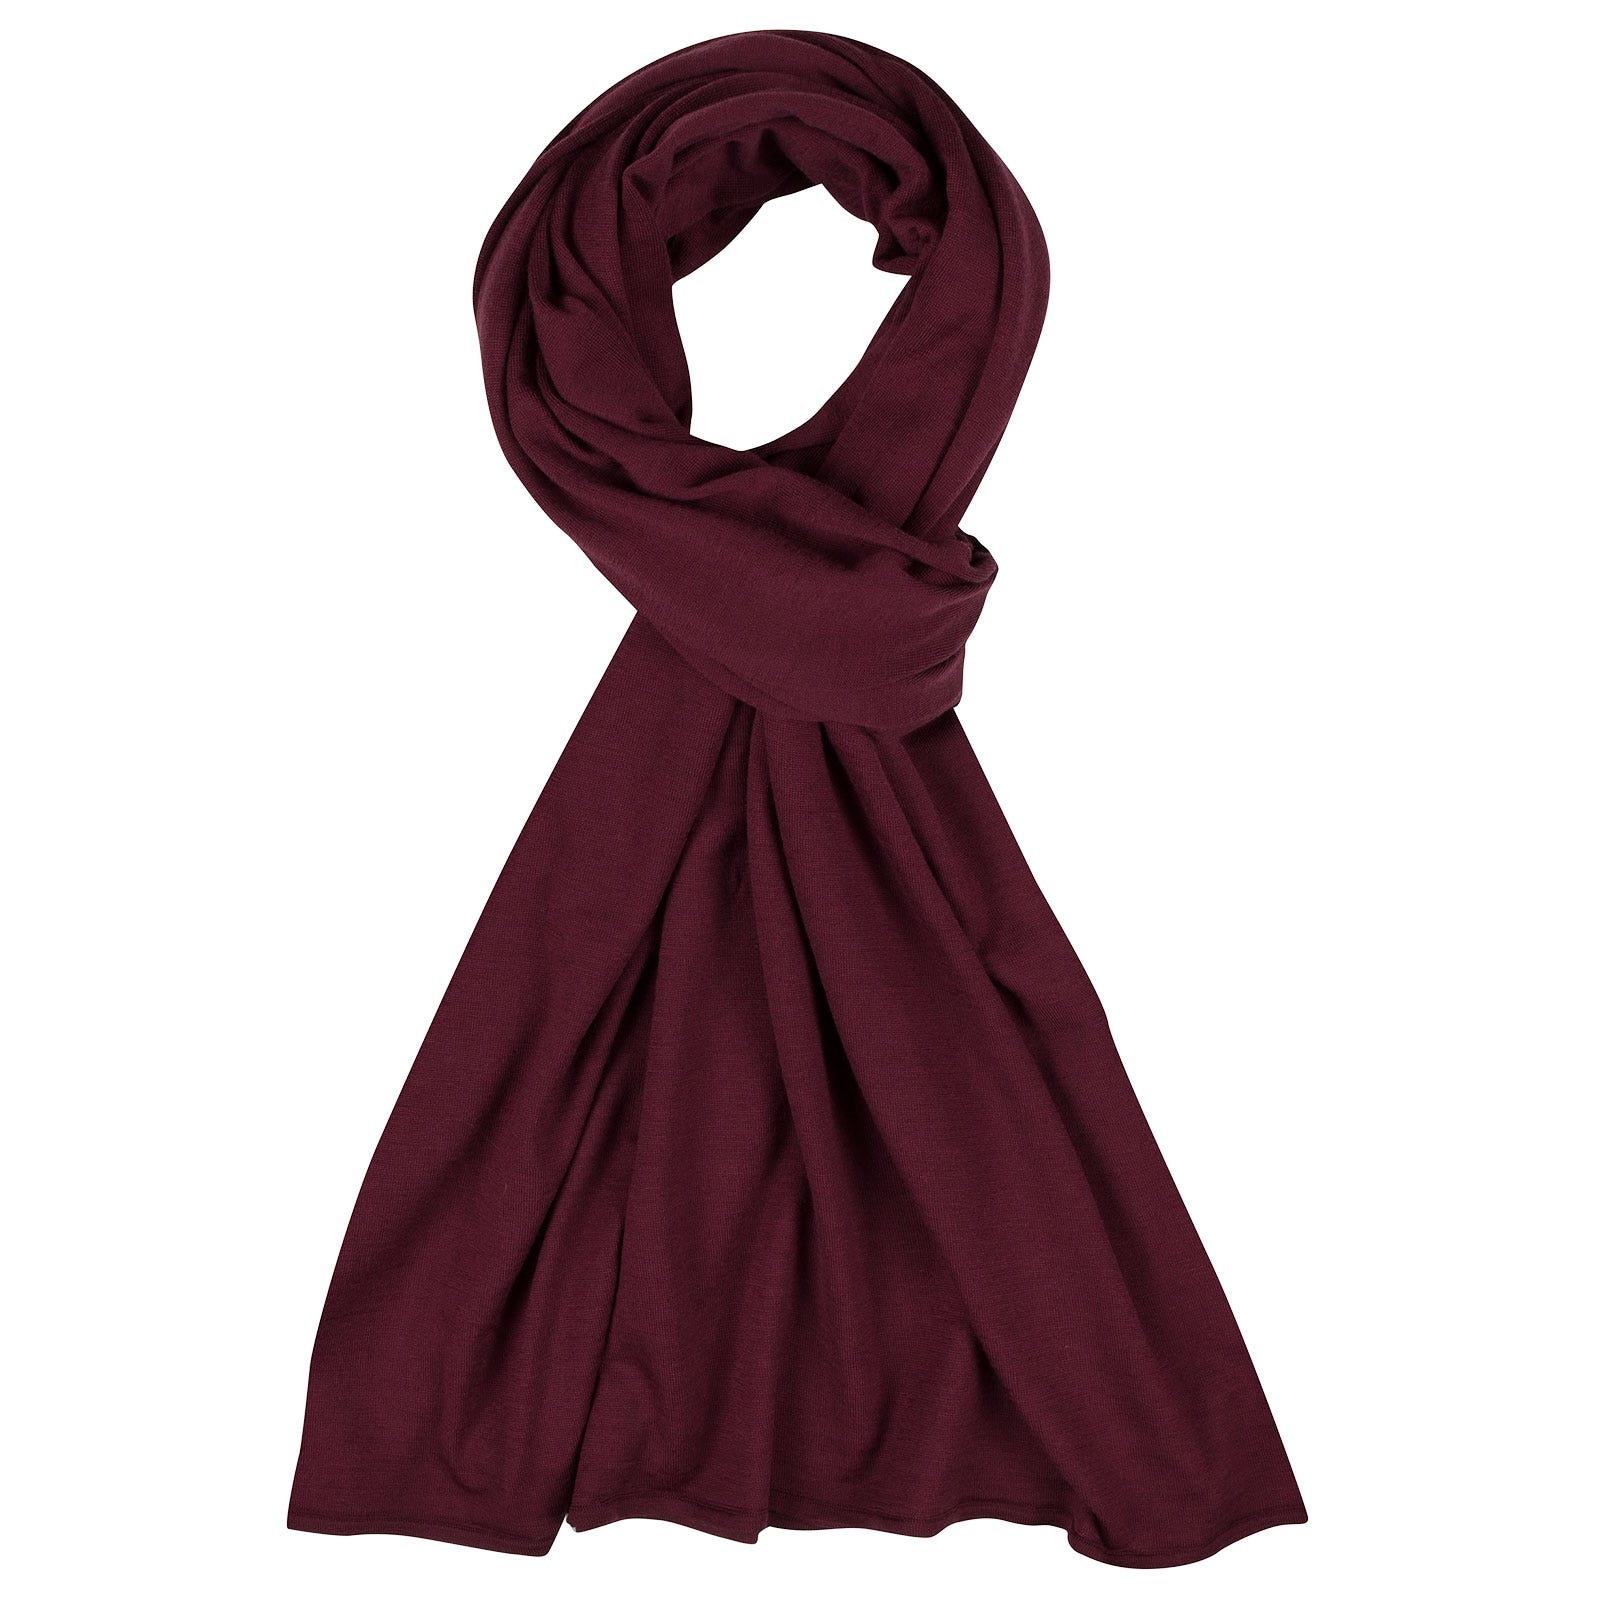 John Smedley Wings Merino Wool Shawl in Bordeaux-ONE